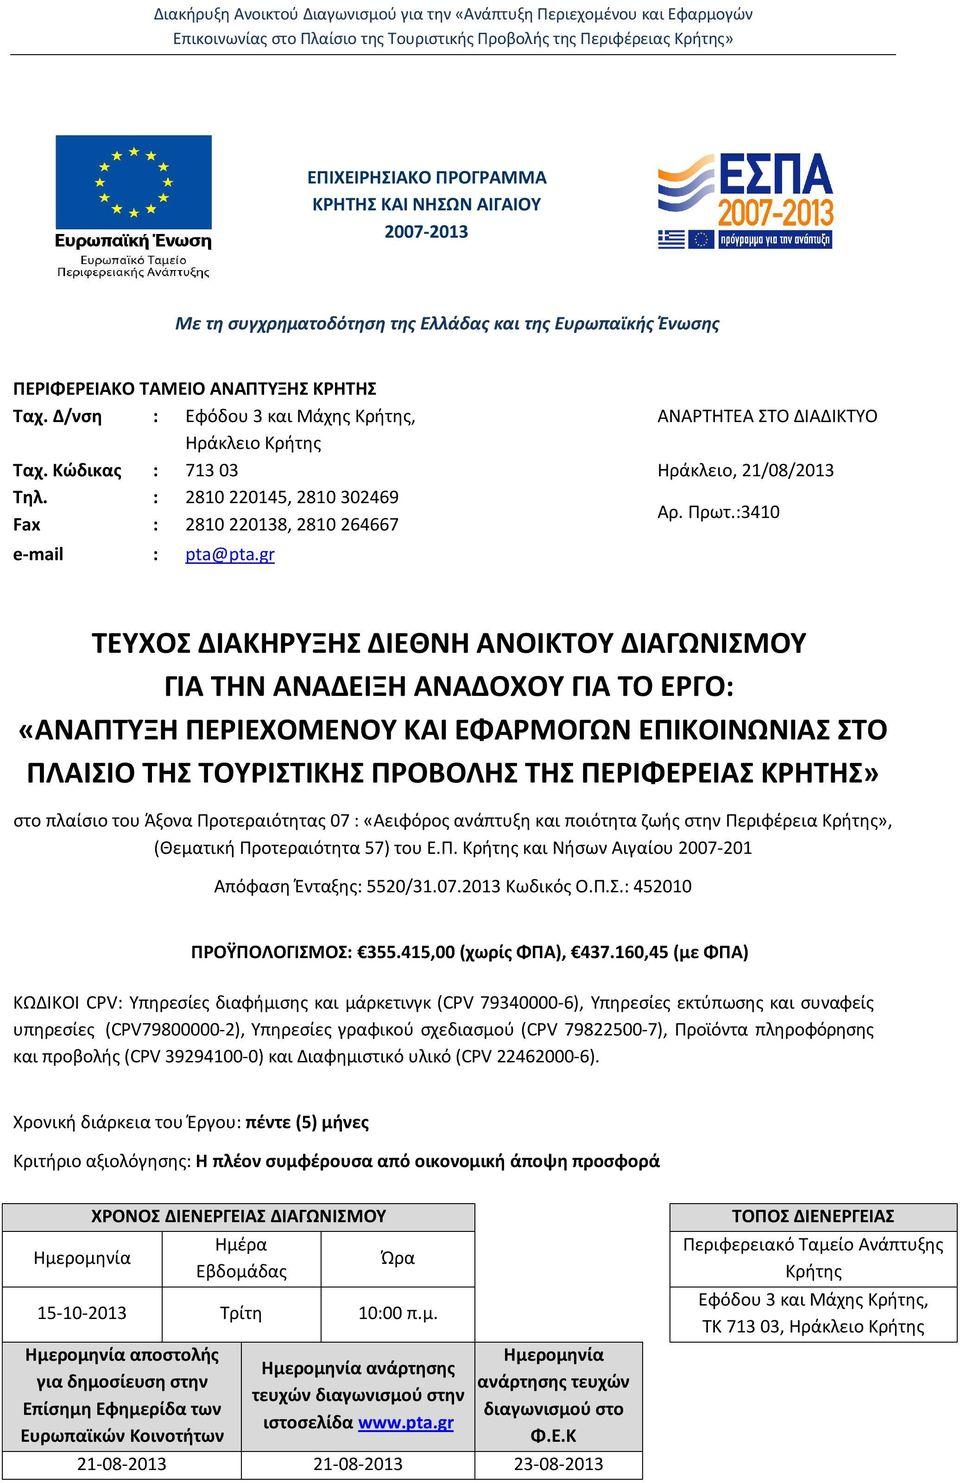 : 2810 220145, 2810 302469 Fax : 2810 220138, 2810 264667 Αρ. Πρωτ.:3410 e-mail : pta@pta.